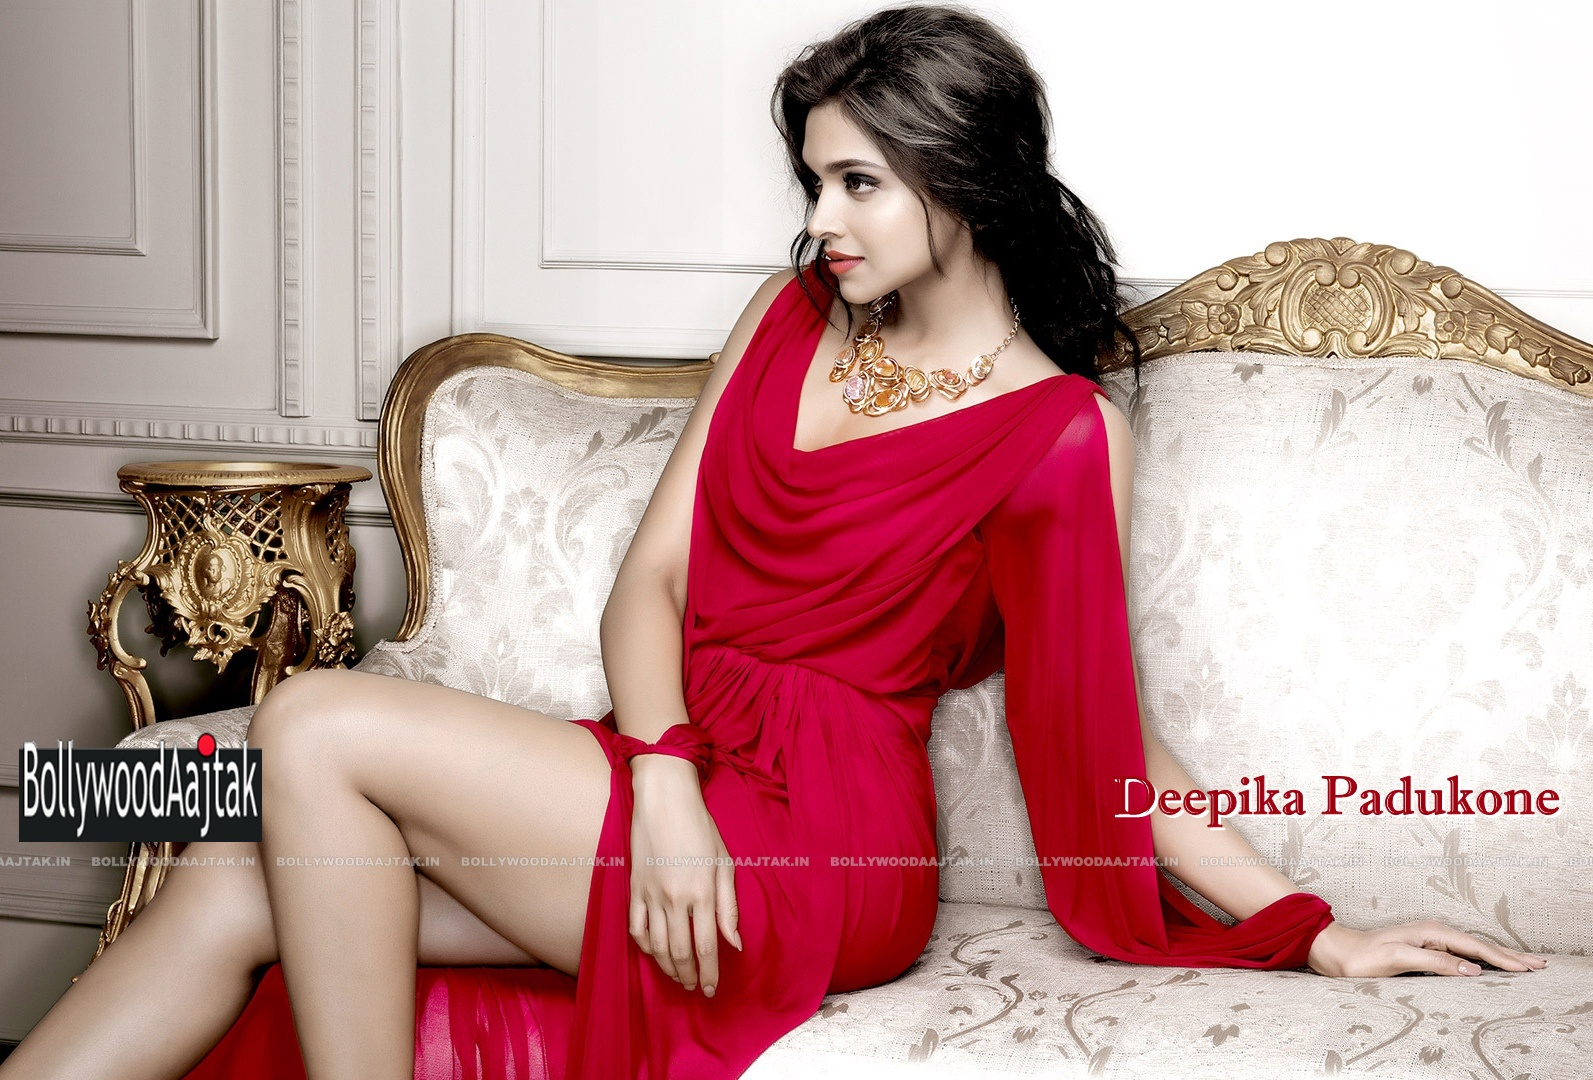 deepika padukone - photo #34